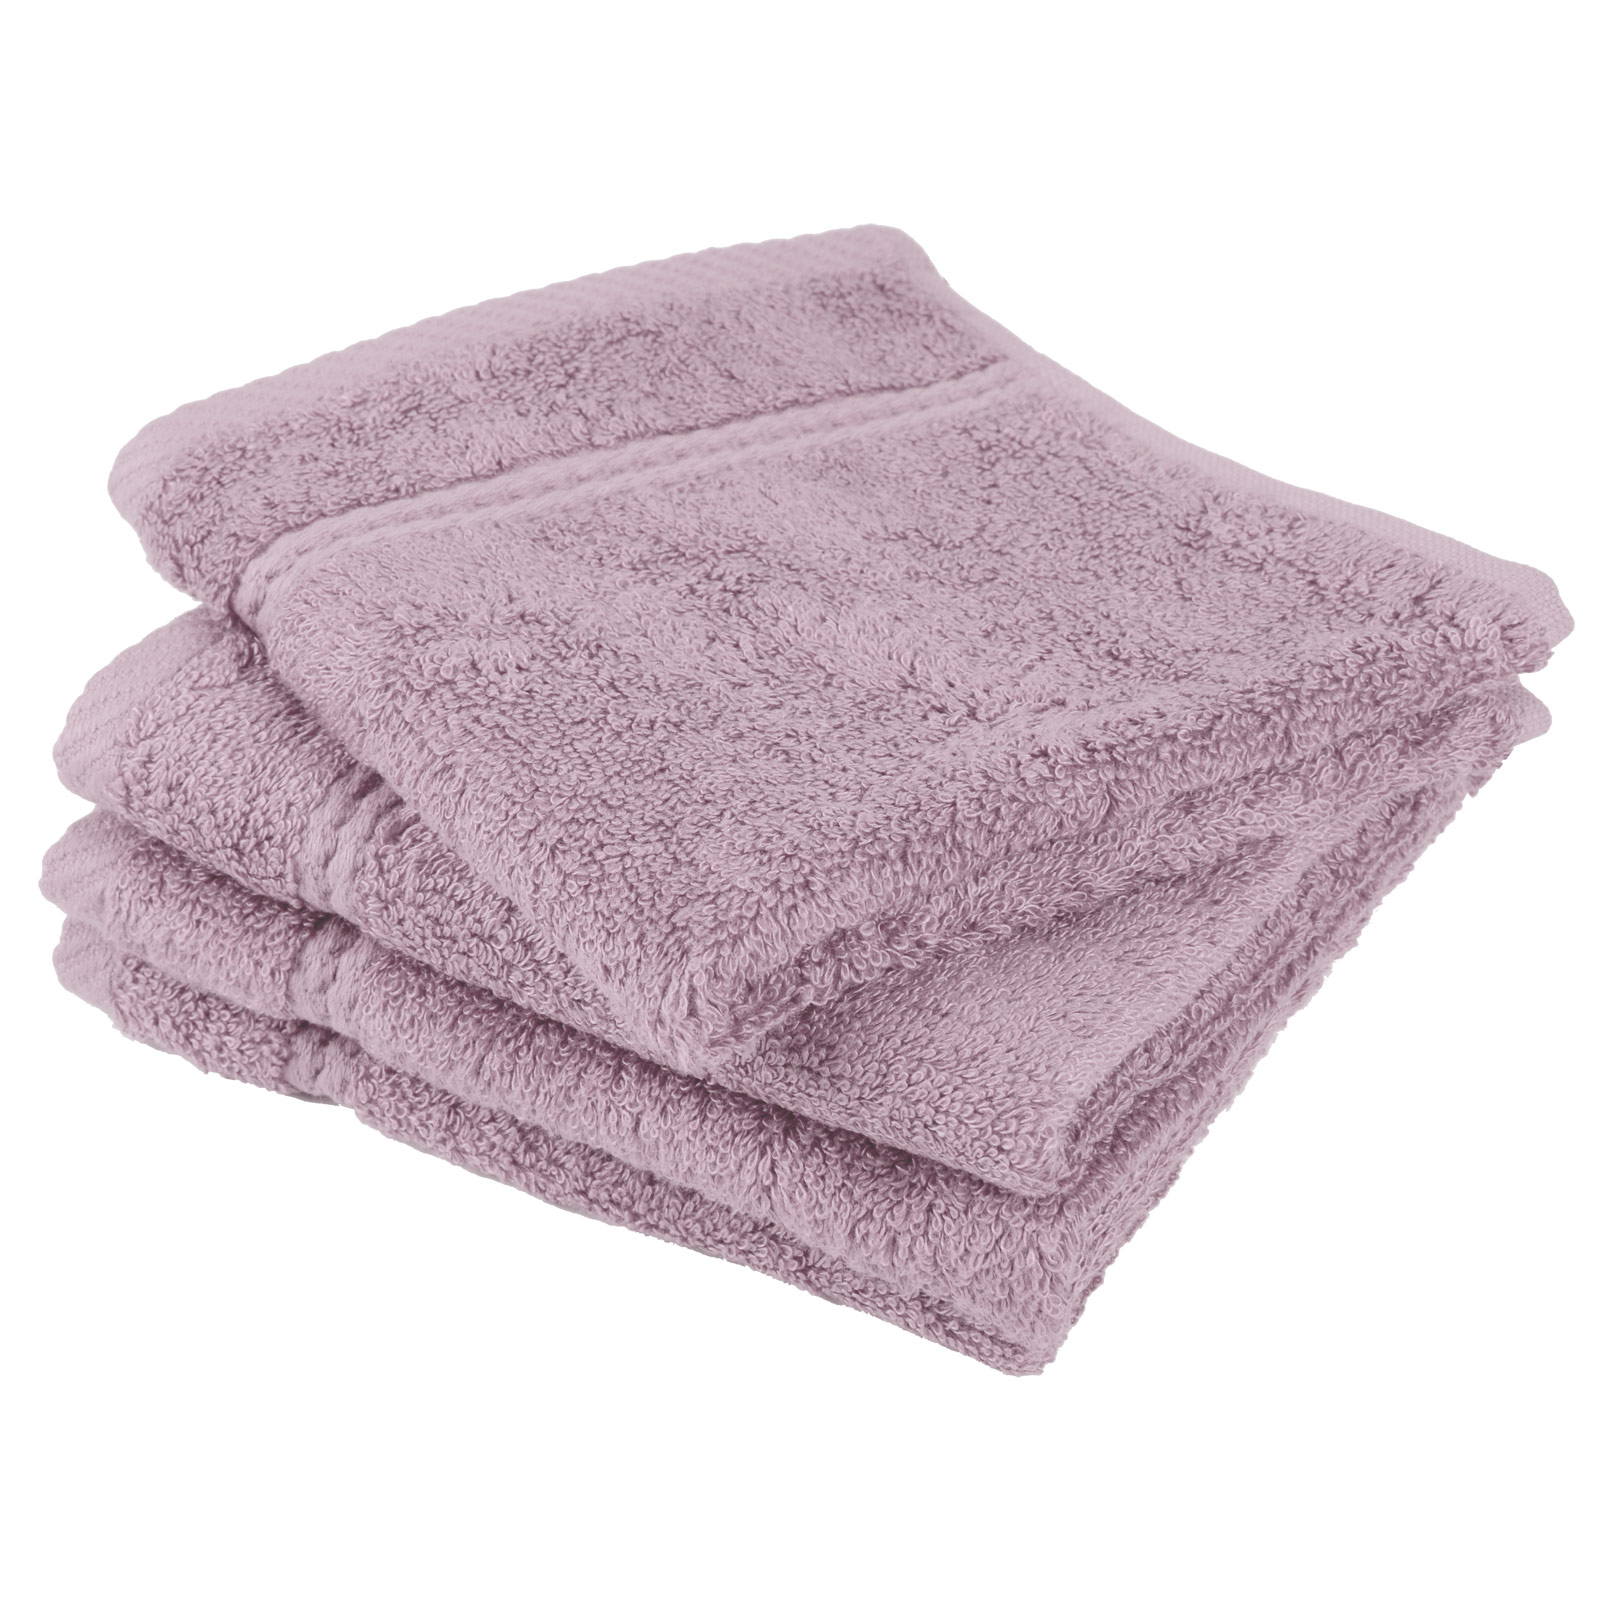 Free Shipping on Many Items! Shop from the world's largest selection and best deals for Bath Hand Towels. Shop with confidence on eBay!